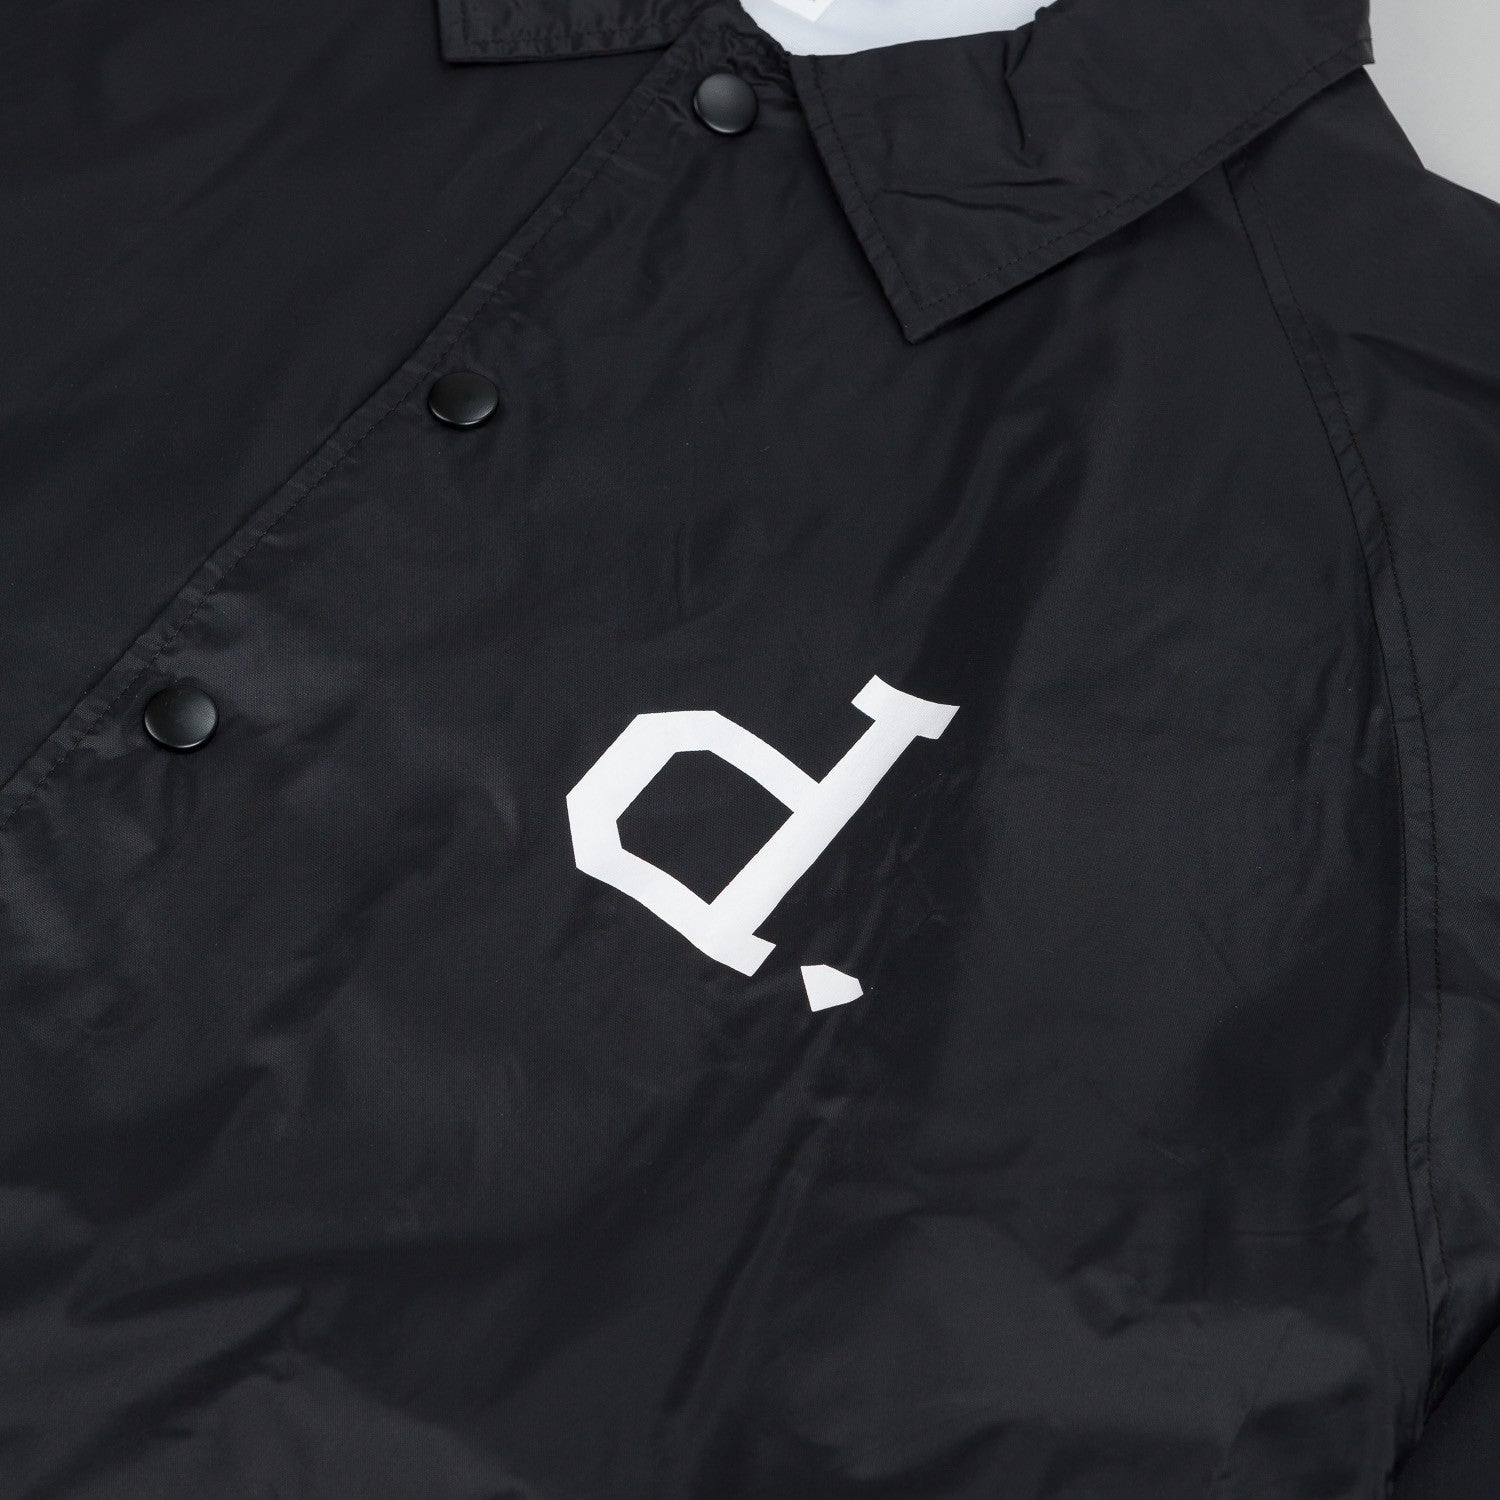 Diamond Un-Polo Coach Jacket - Black